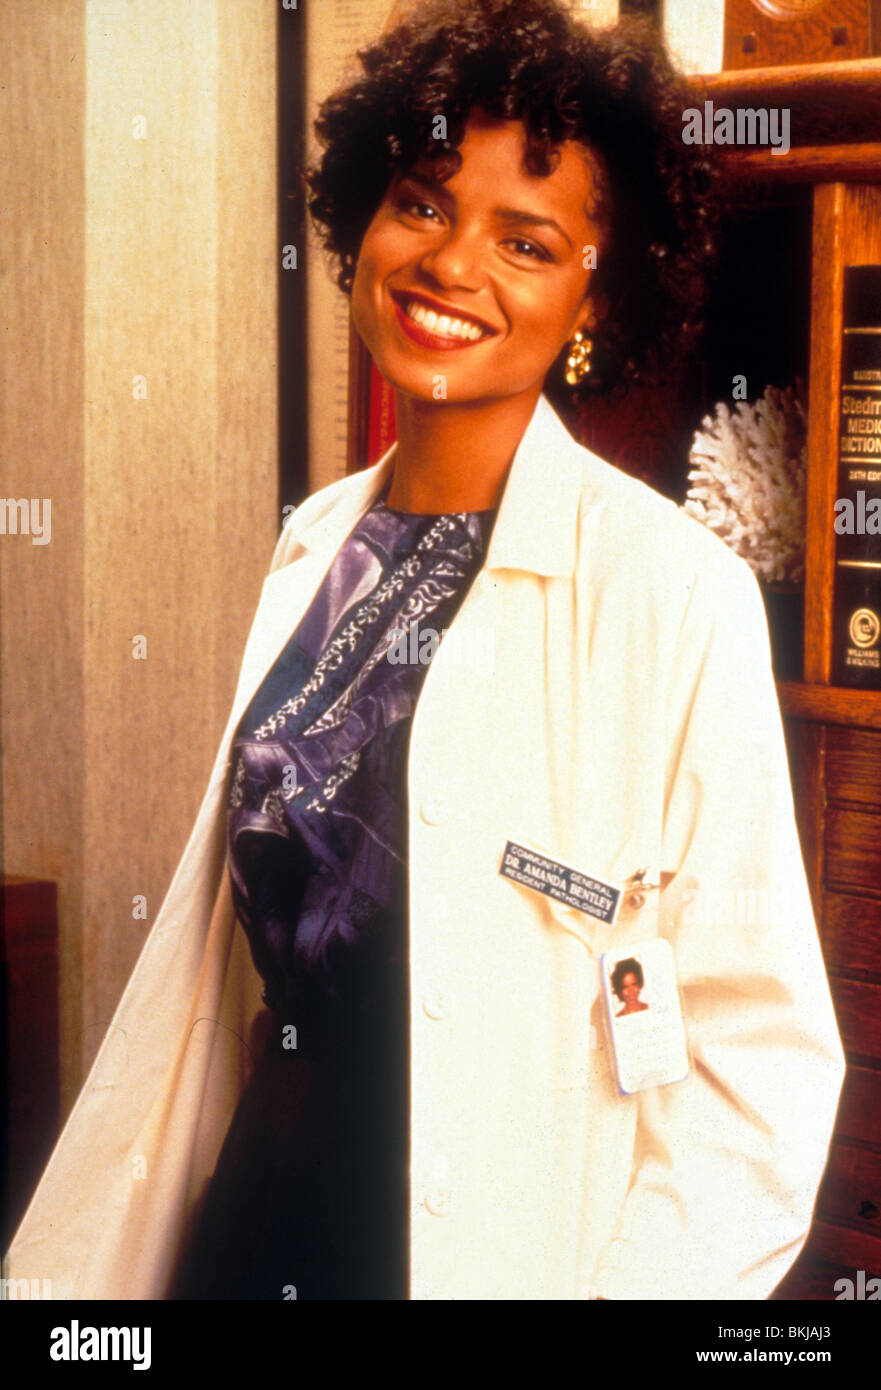 DIAGNOSIS MURDER (TV) VICTORIA ROWELL DGNM 004 - Stock Image